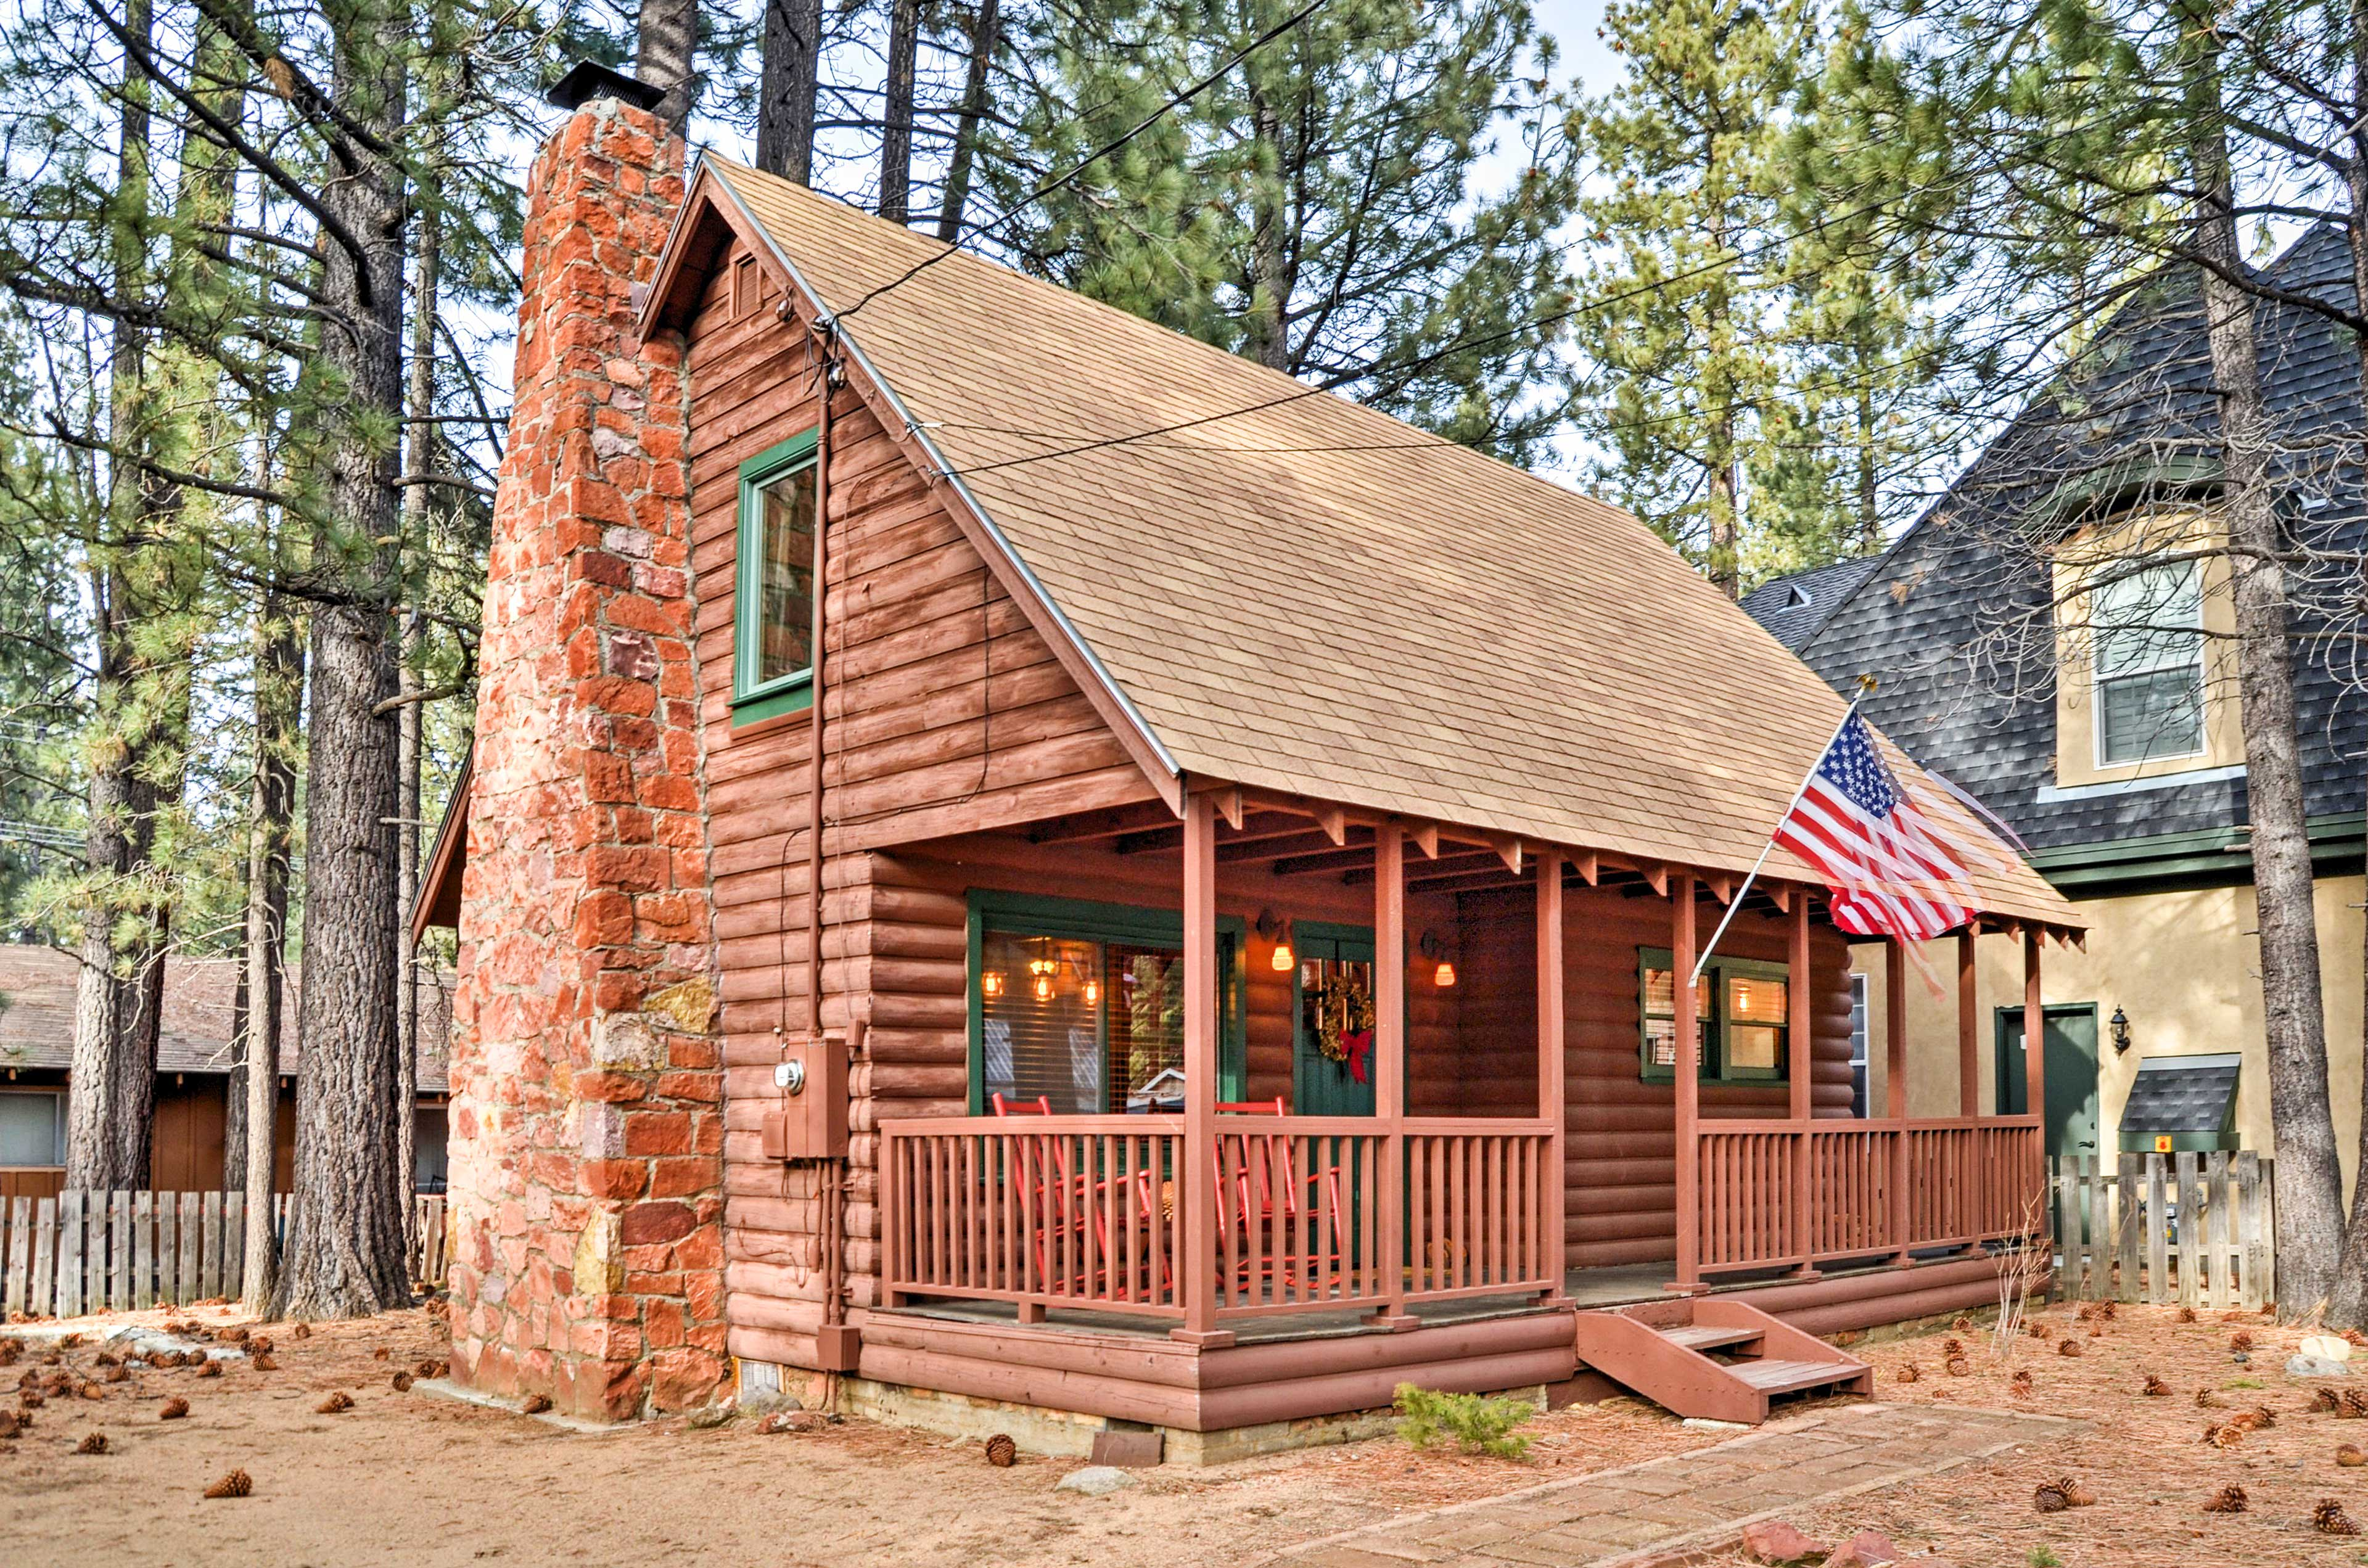 You'll love the vintage character of this 1950's California log cabin.